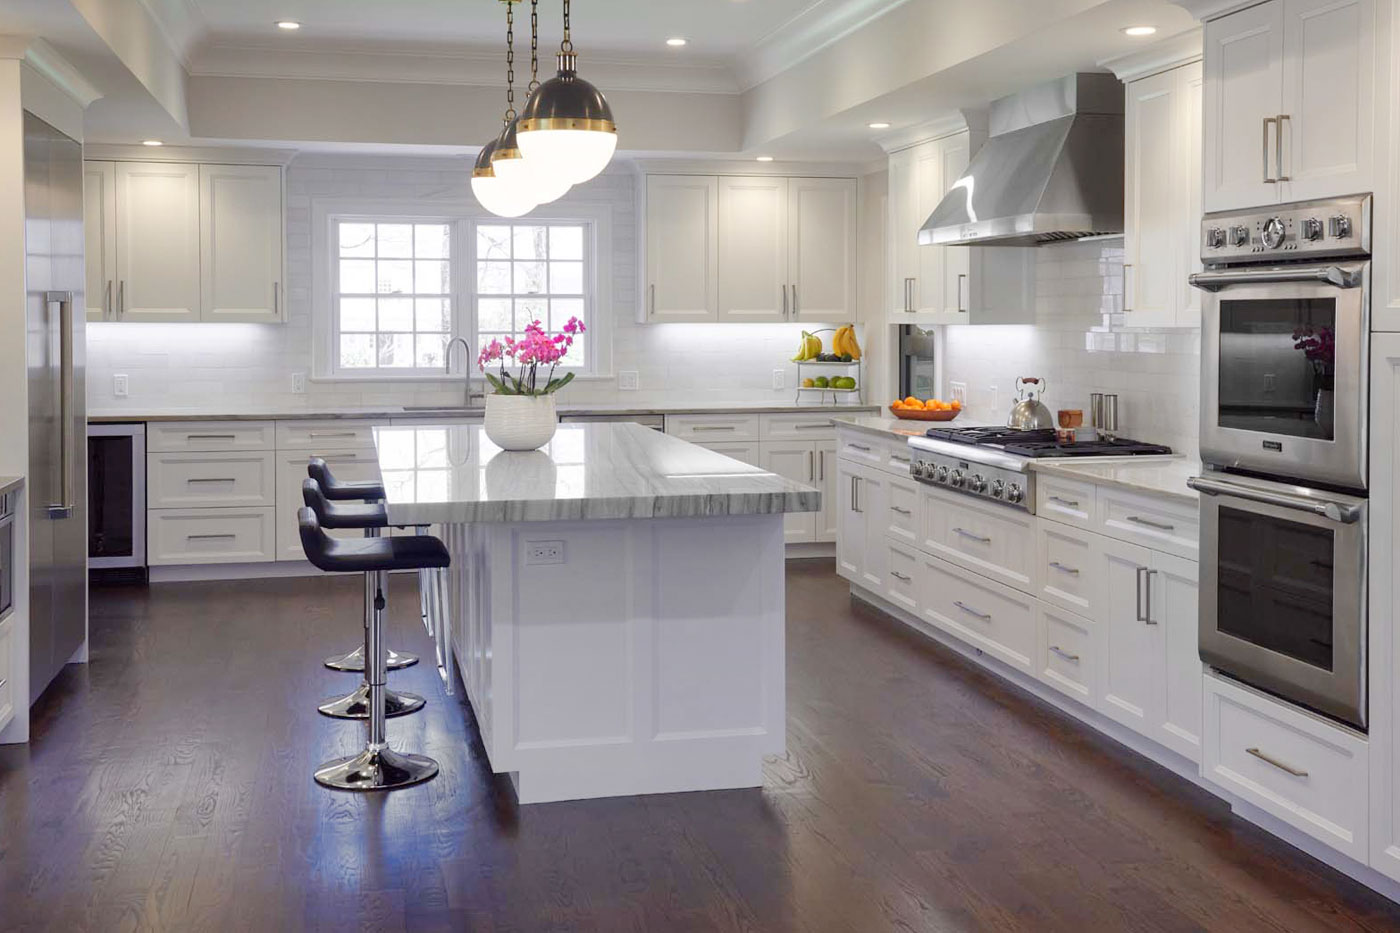 maria-matluck-kitchen-designer-remodeling-connecticut-17